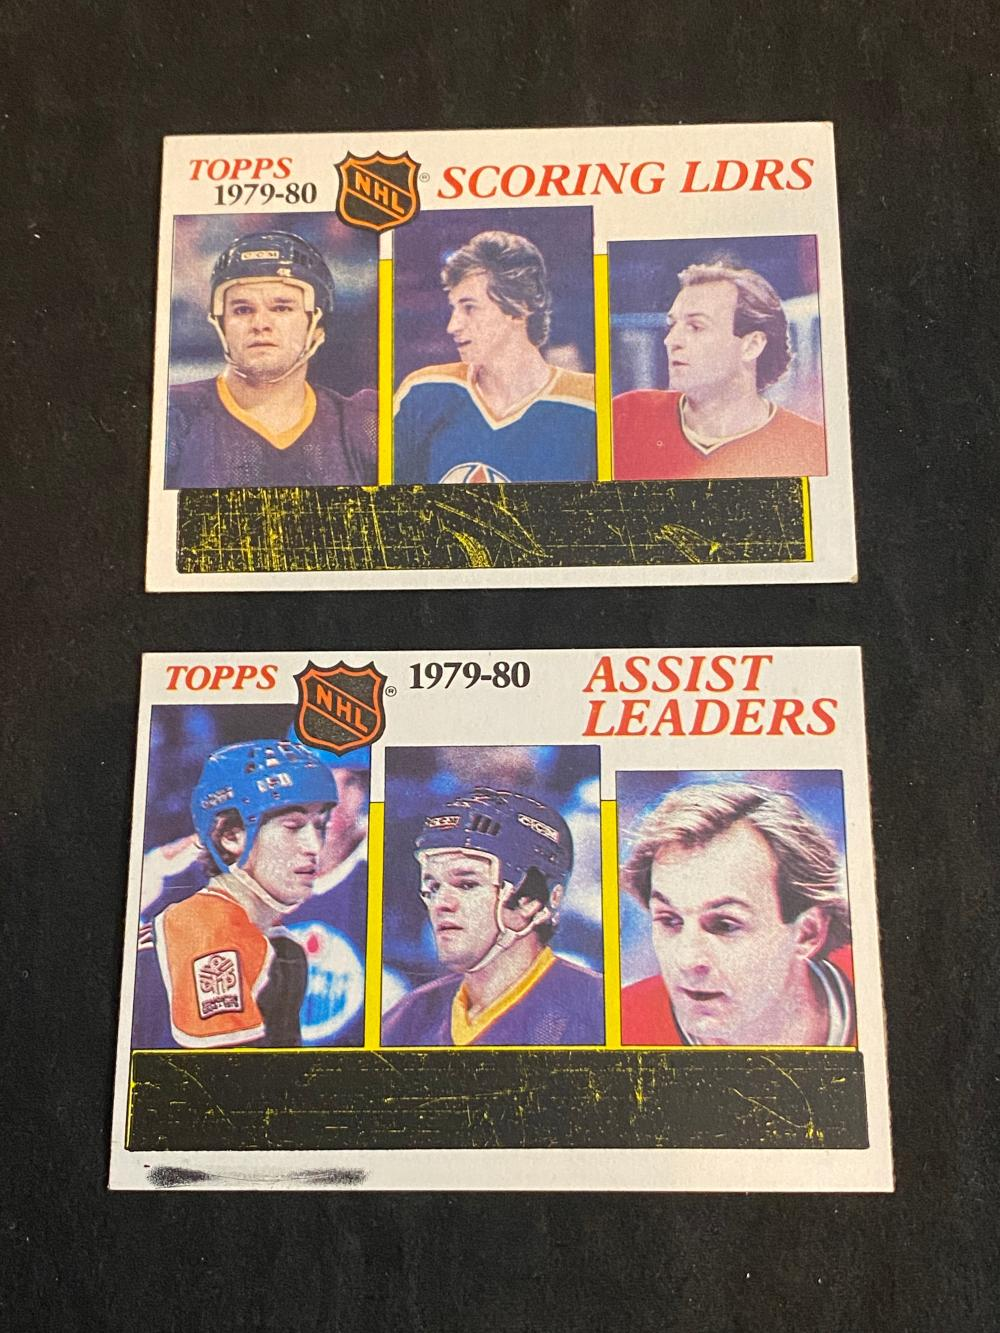 (2) Unscratched EXMT 1980-81 Topps Scoring & Assist Leaders Wayne Gretzky Hockey Cards